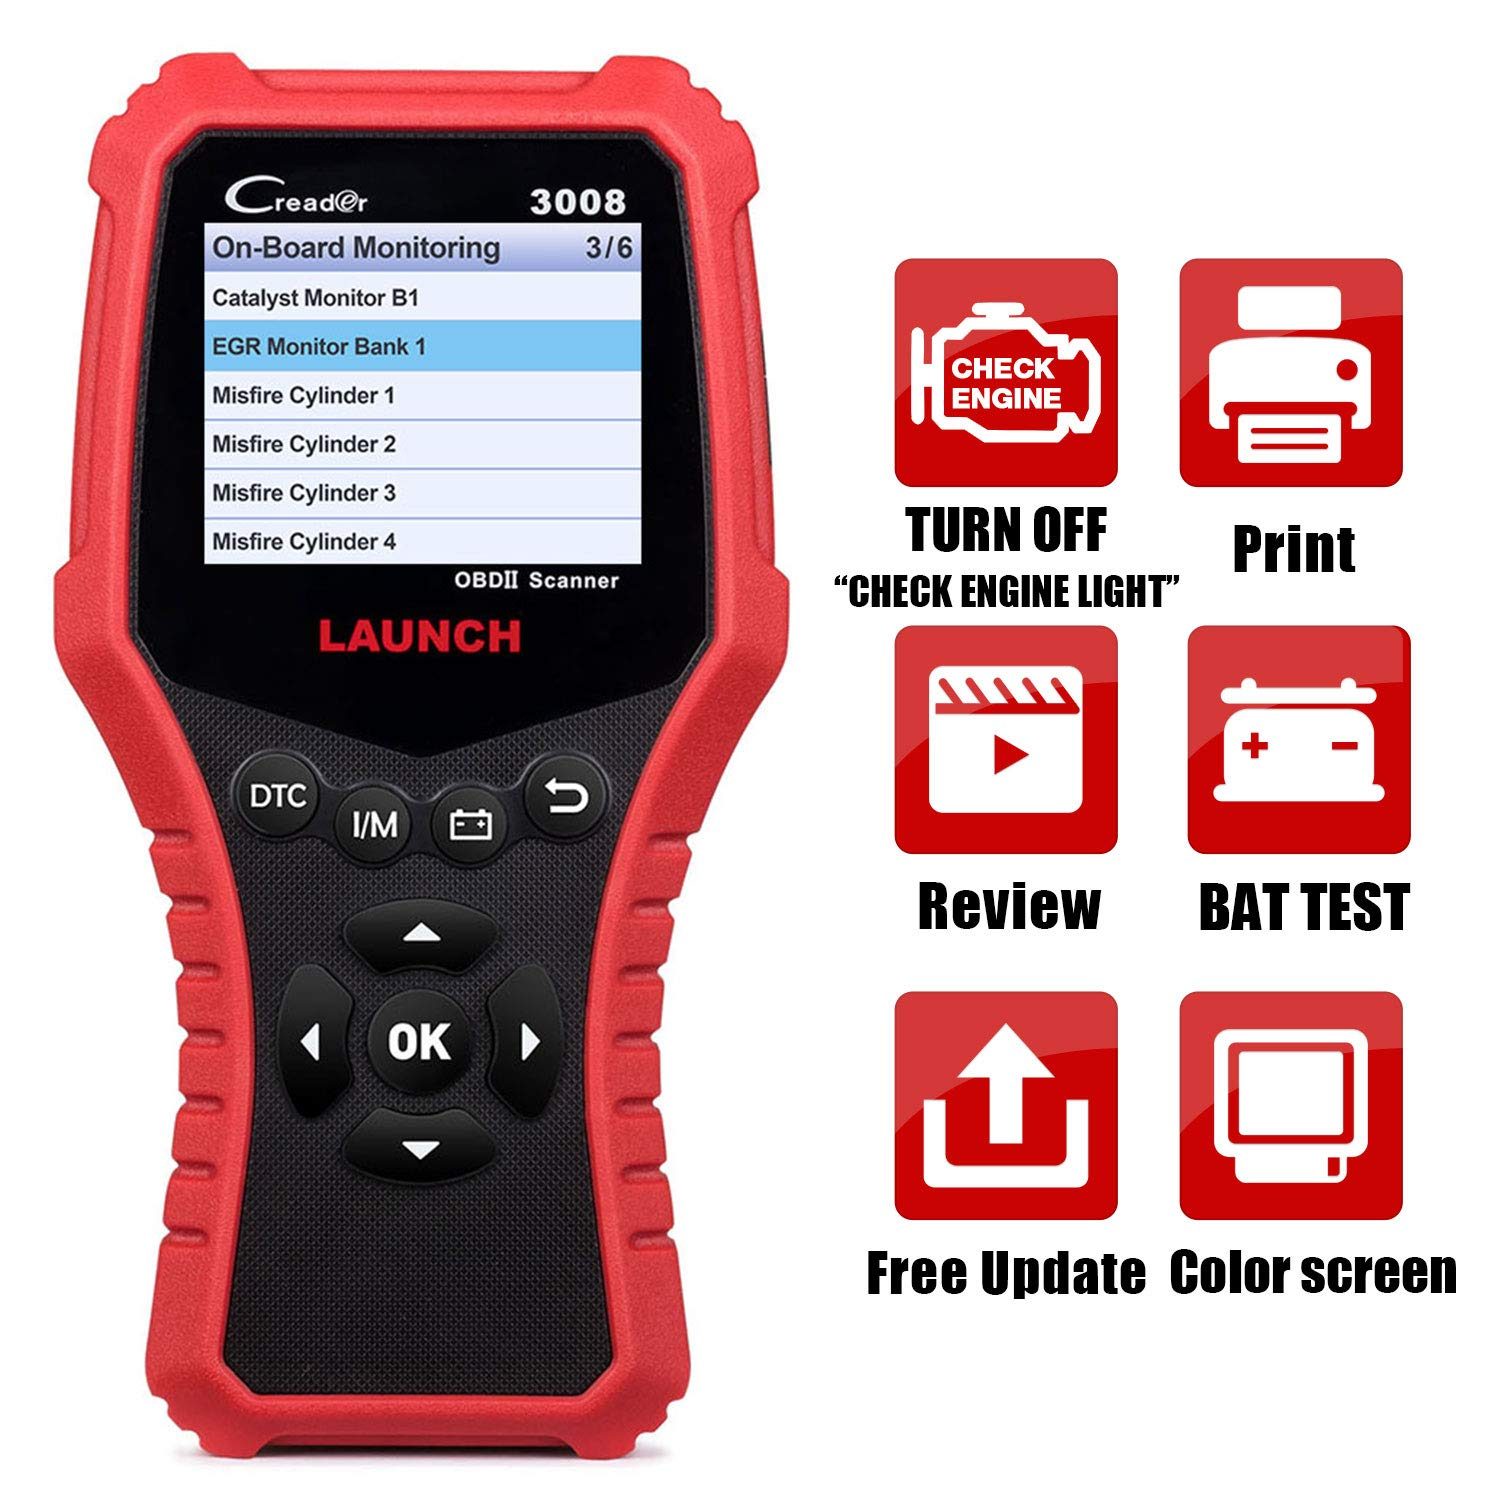 LAUNCH Creader 3008 2018 OBD2 Scanner Engine Scan Tool Automotive Diagnostic Tool with Battery Test and Print Function, Support O2 Sensor/Evap System Test/Check Engine Light/Graph Data Stream